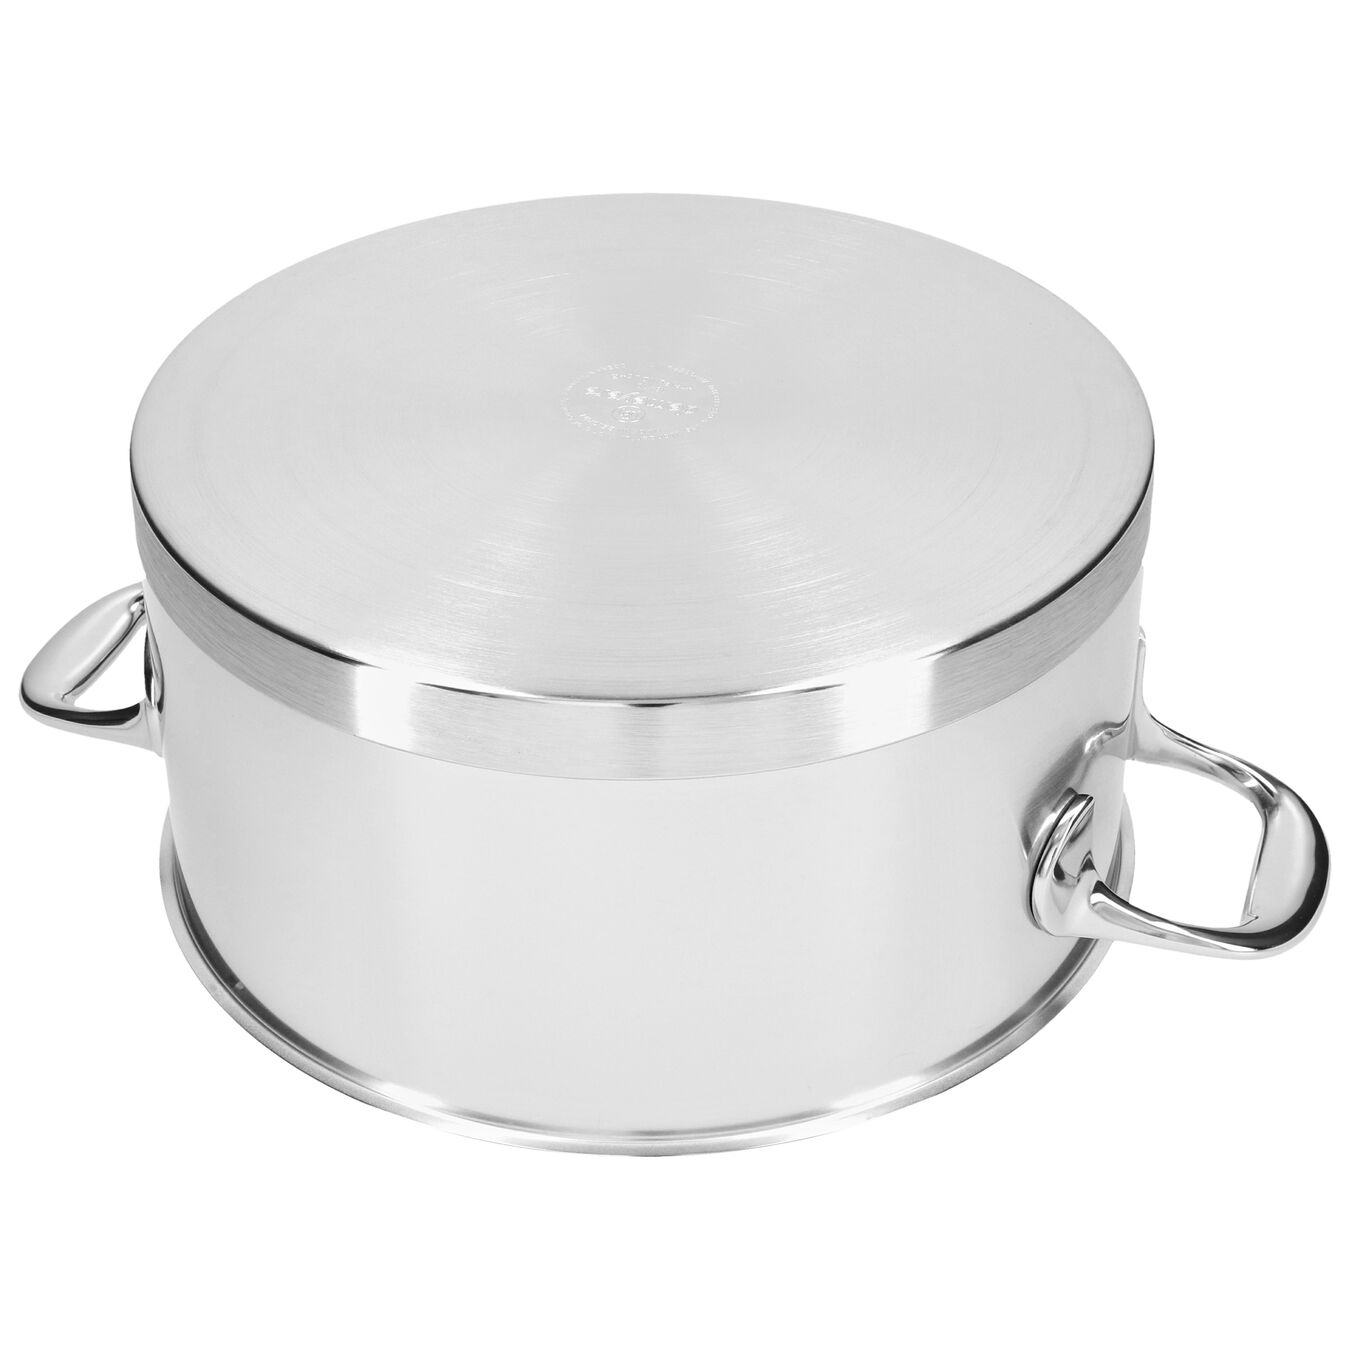 5.25 l Stew pot with lid,,large 3